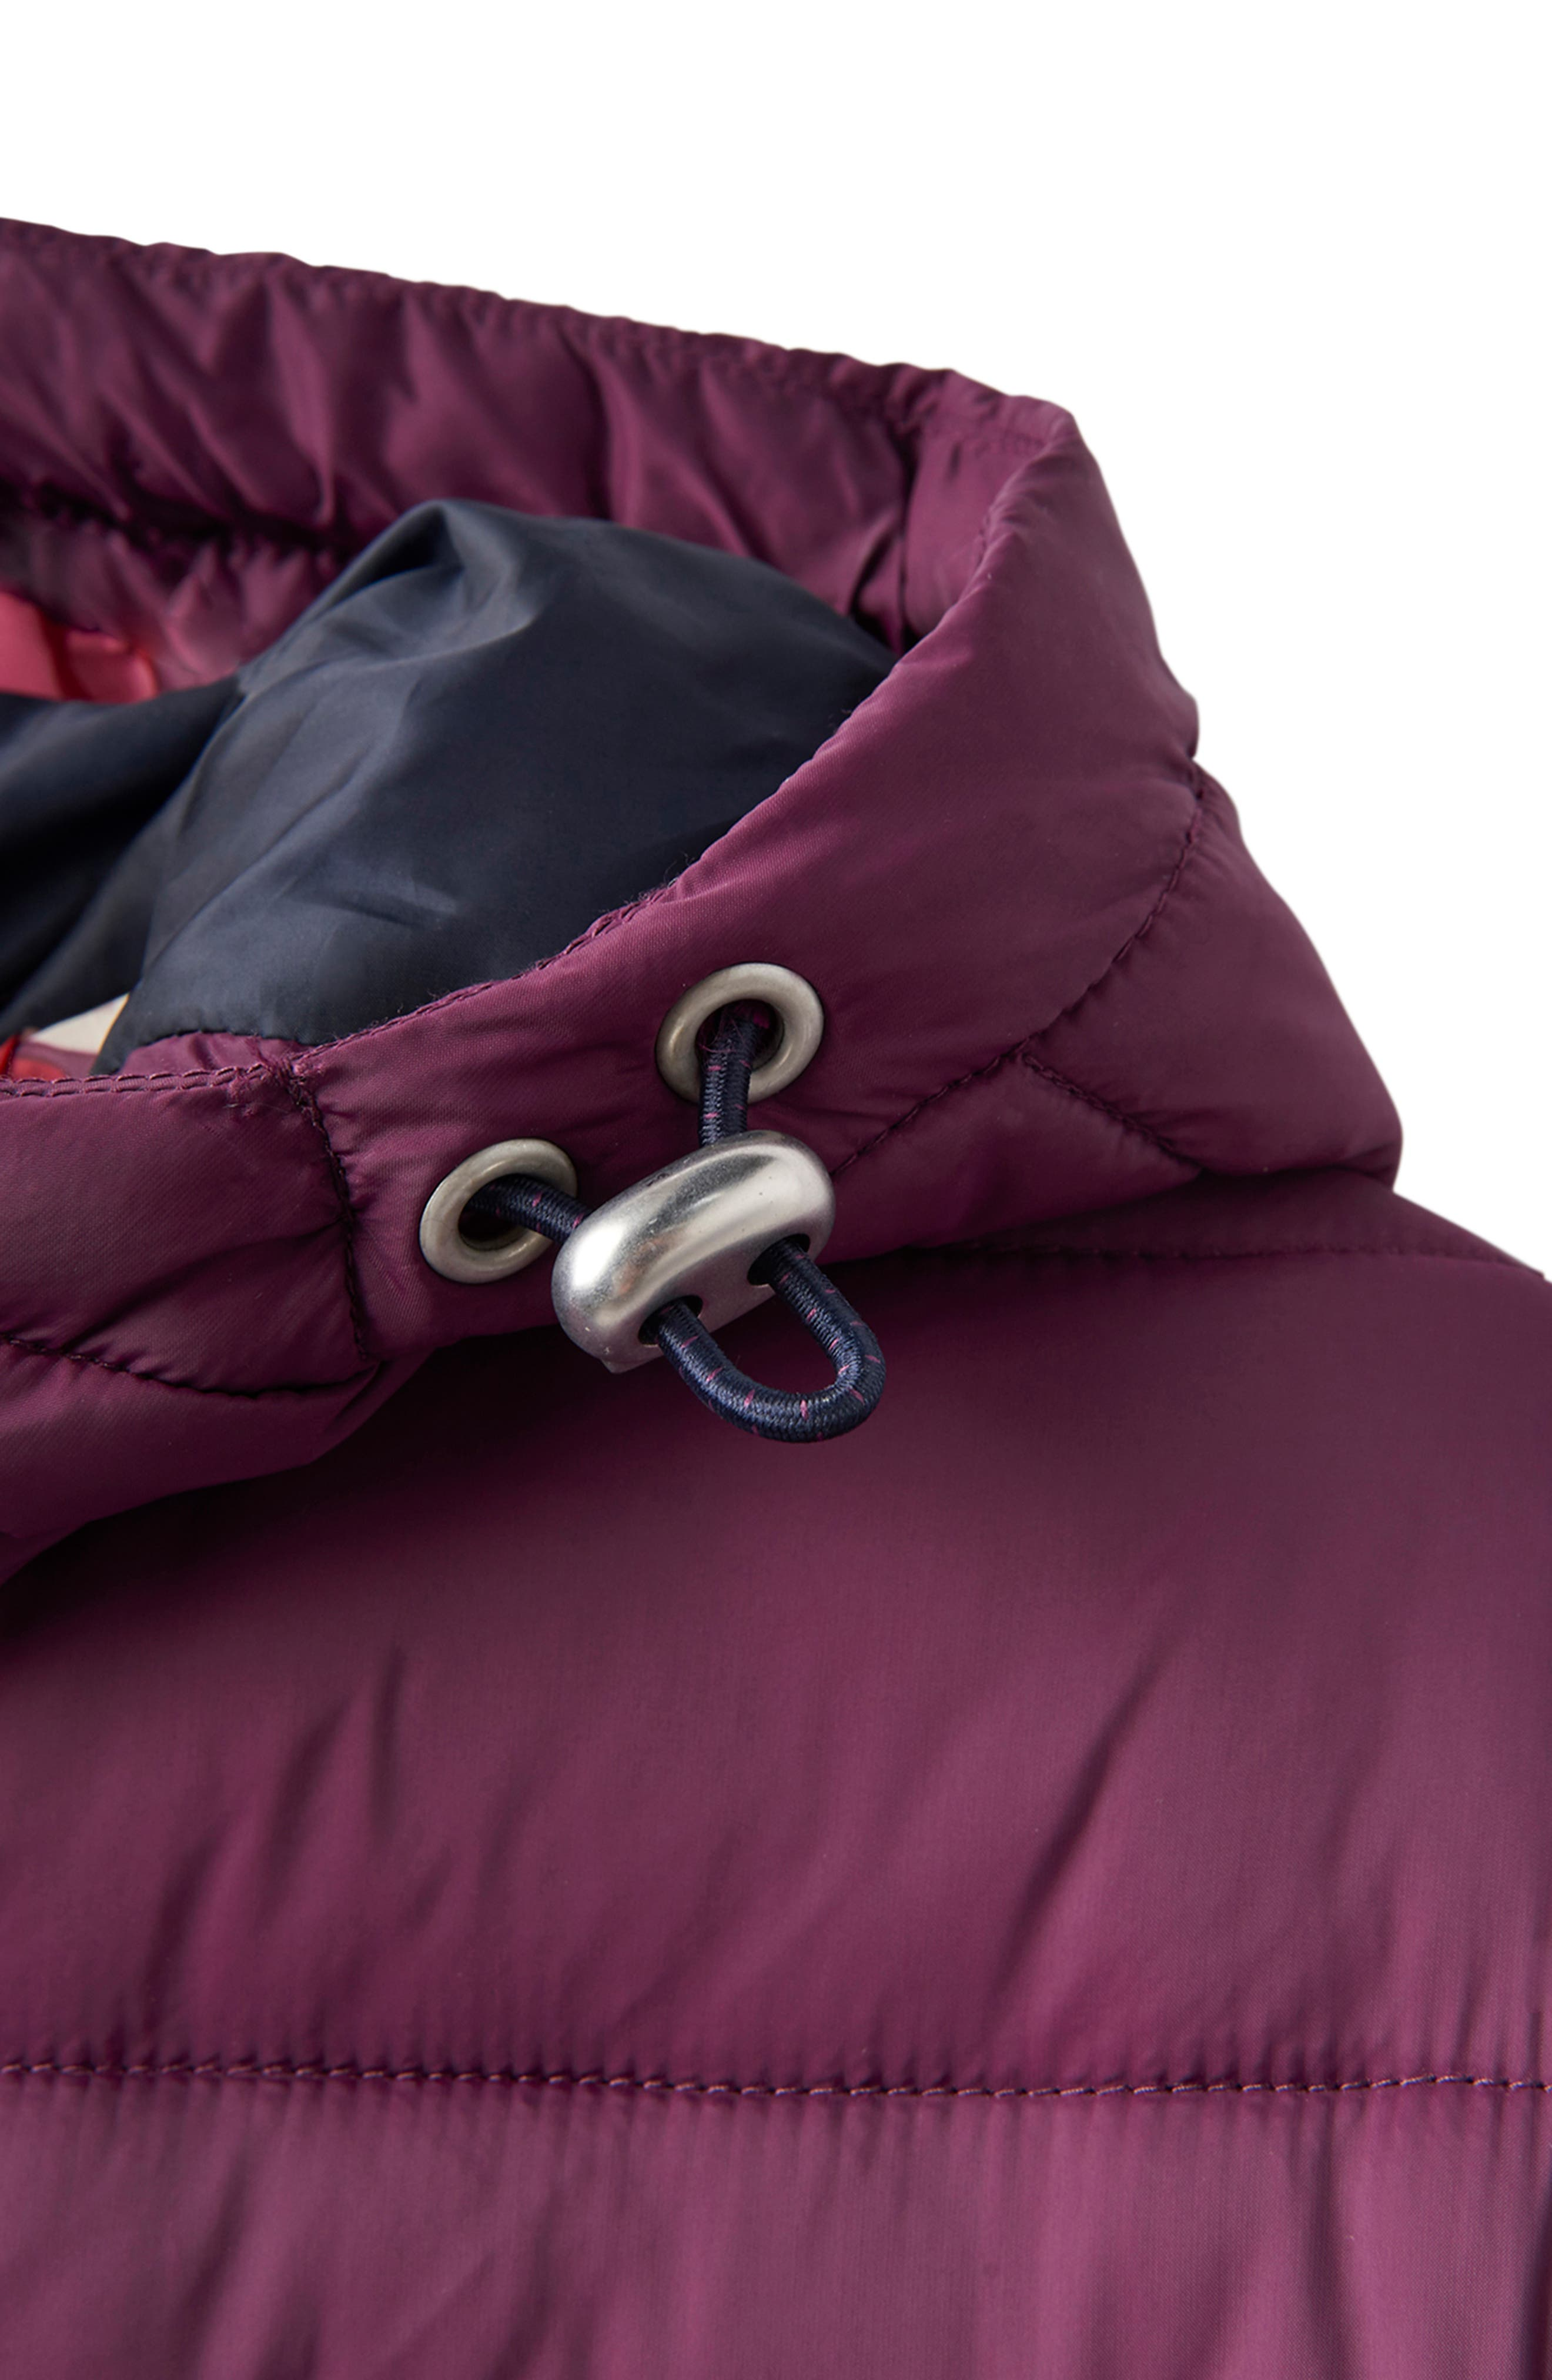 JOULES,                             Heathcote Two-Tone Puffer Jacket,                             Alternate thumbnail 11, color,                             BURGUNDY